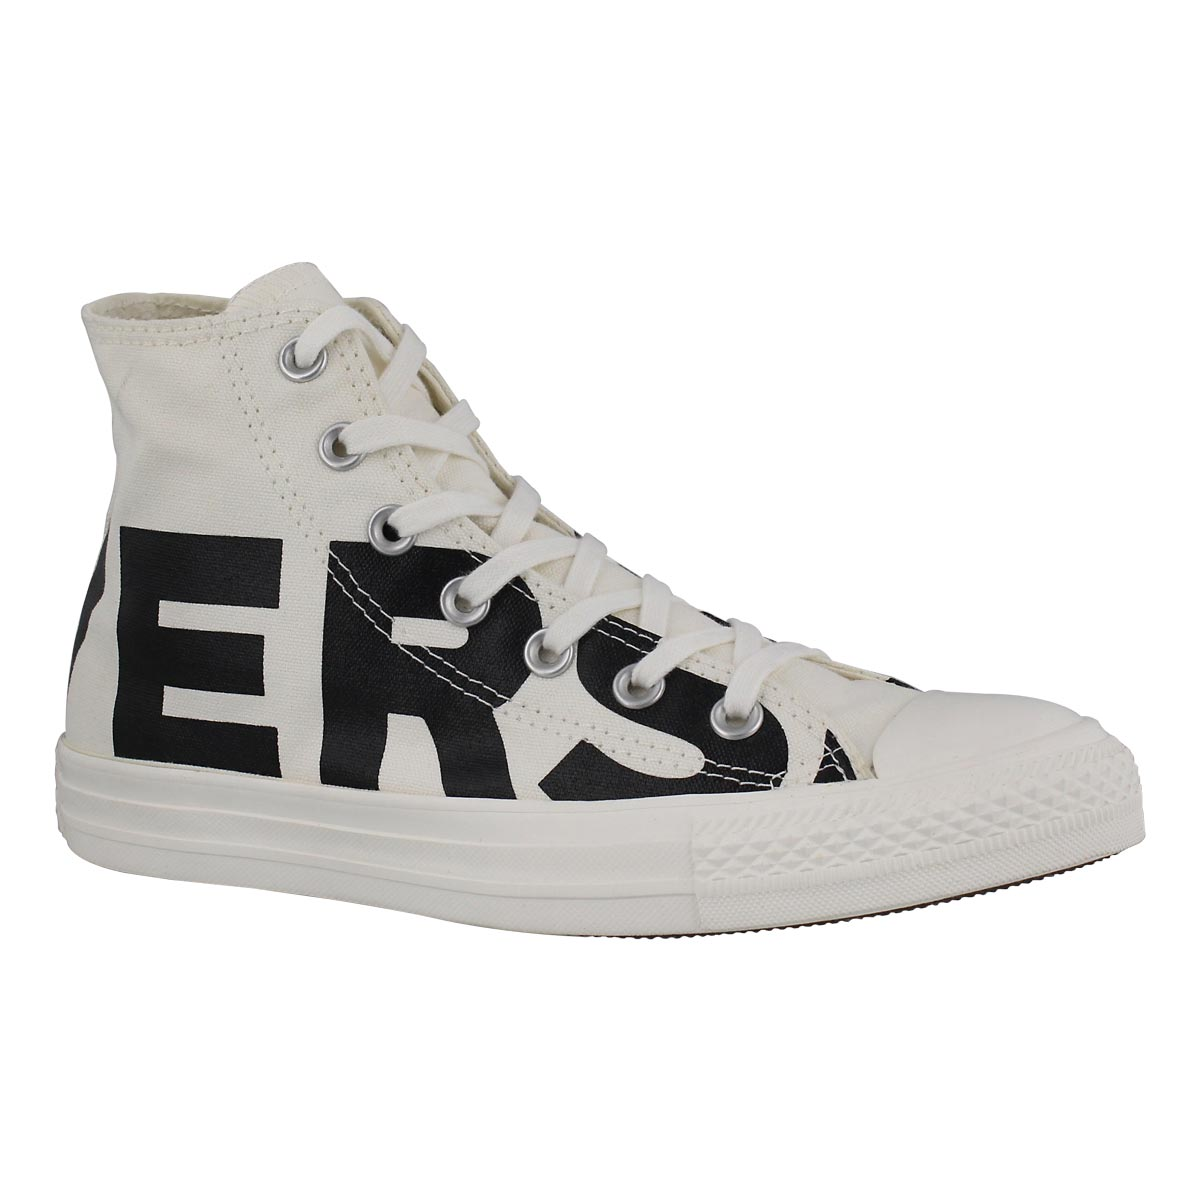 Women's CT ALL STAR WORDMARK high top sneakers